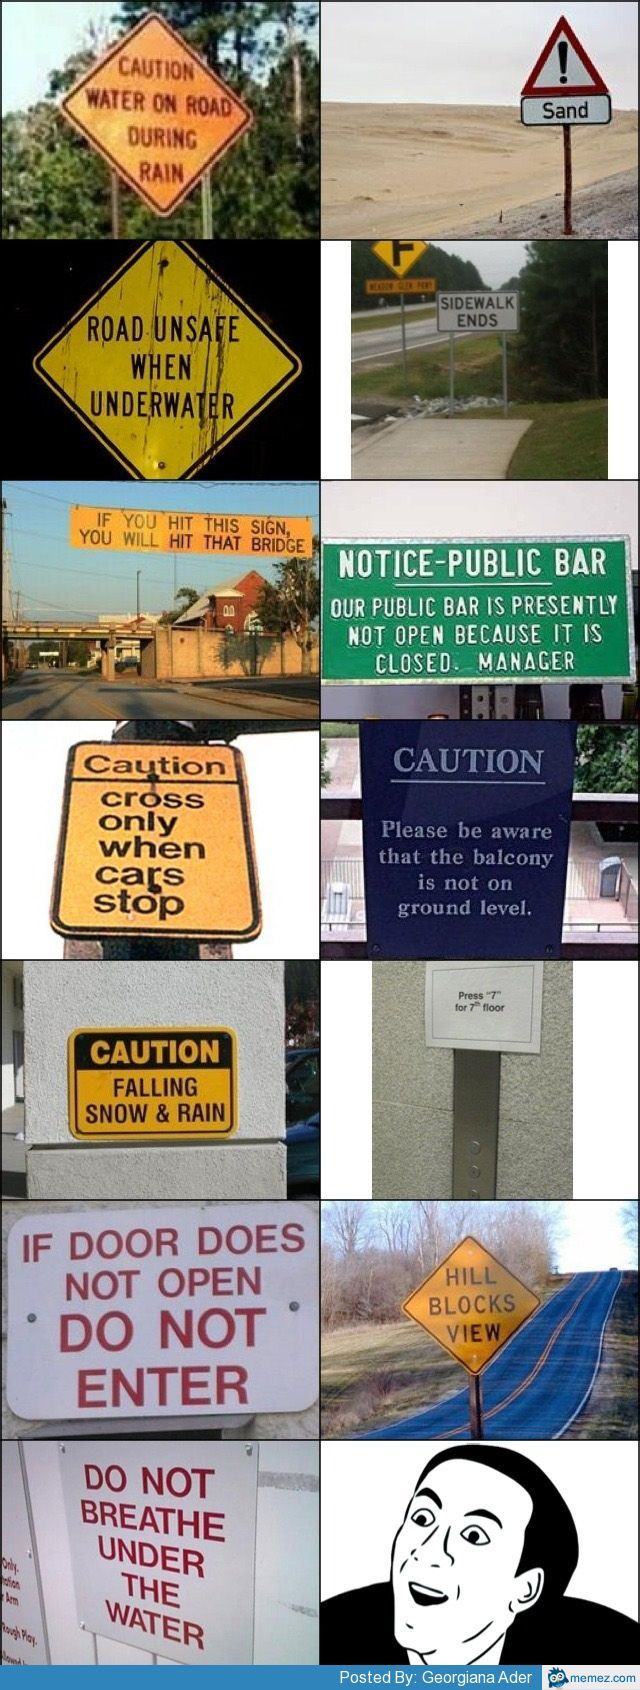 """""""Who's dumber - the sign-makers, or the people they're making them for?"""" I dunno, maybe small dumb things by the people made the sign makers think they had to make weirder signs."""